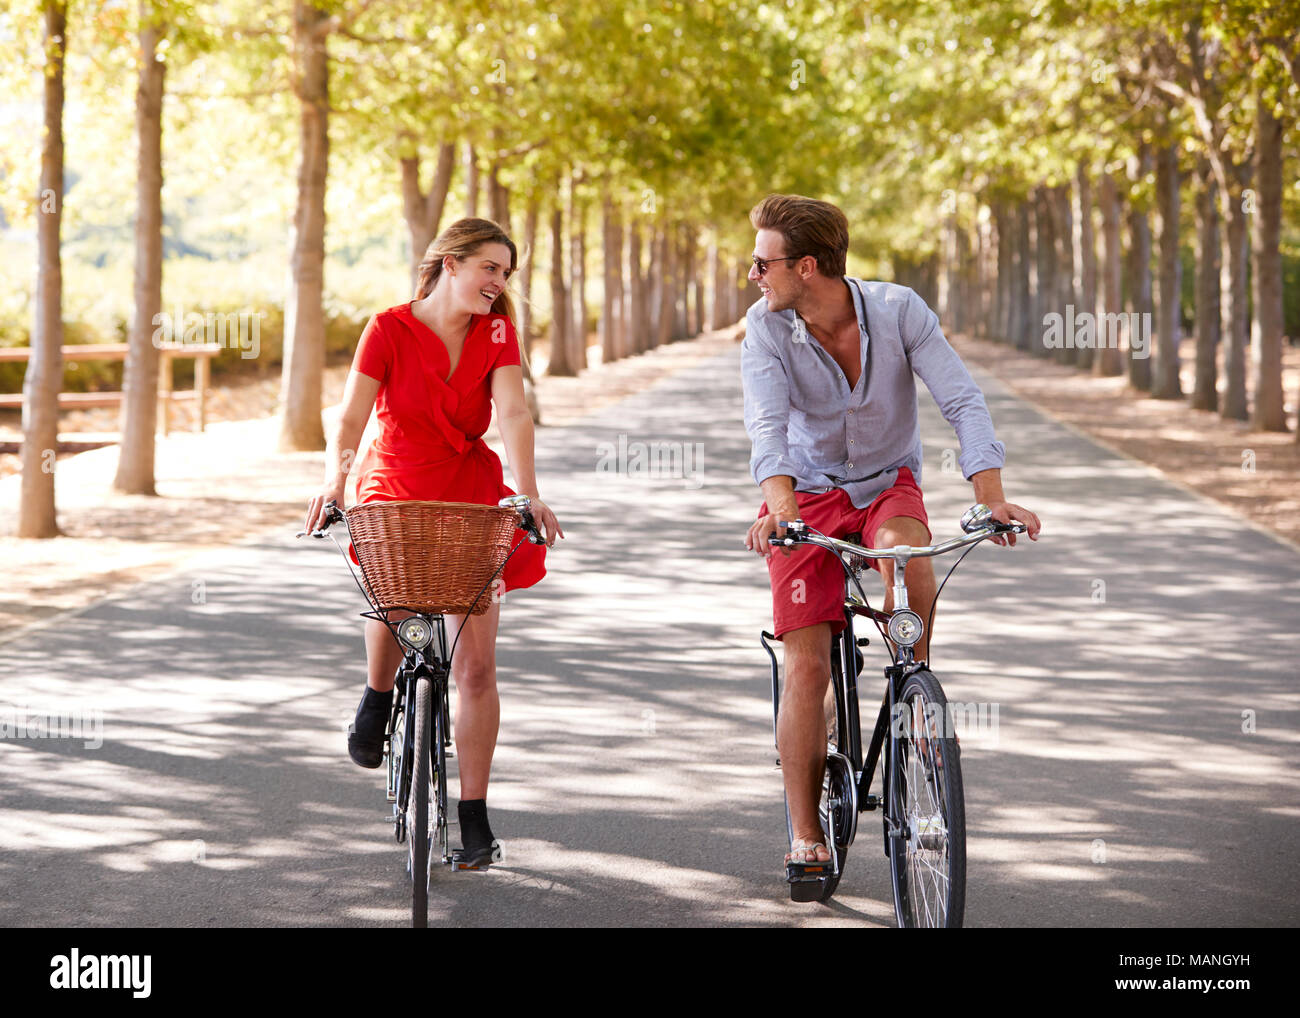 Couple riding bikes on an empty road looking at each other - Stock Image